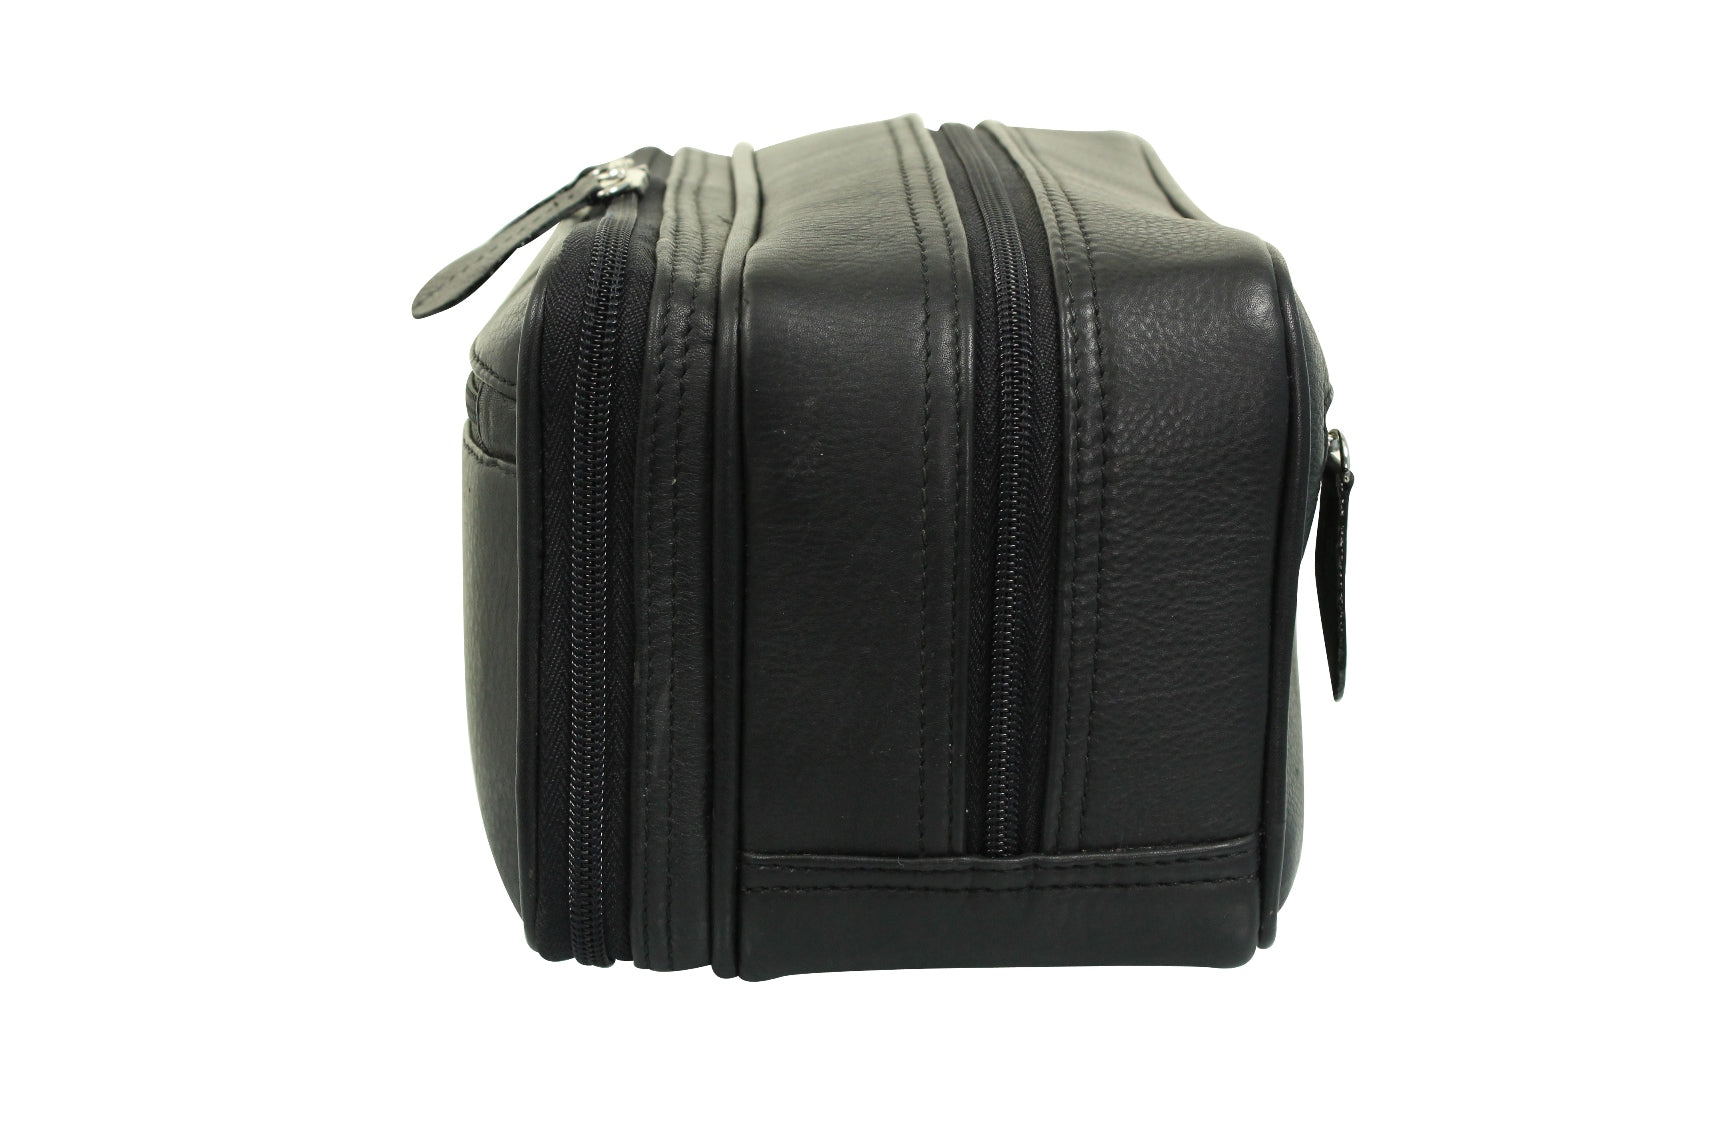 Real Leather Toiletry Wash Bag by Xact Clothing (Black)_02_20021_Black